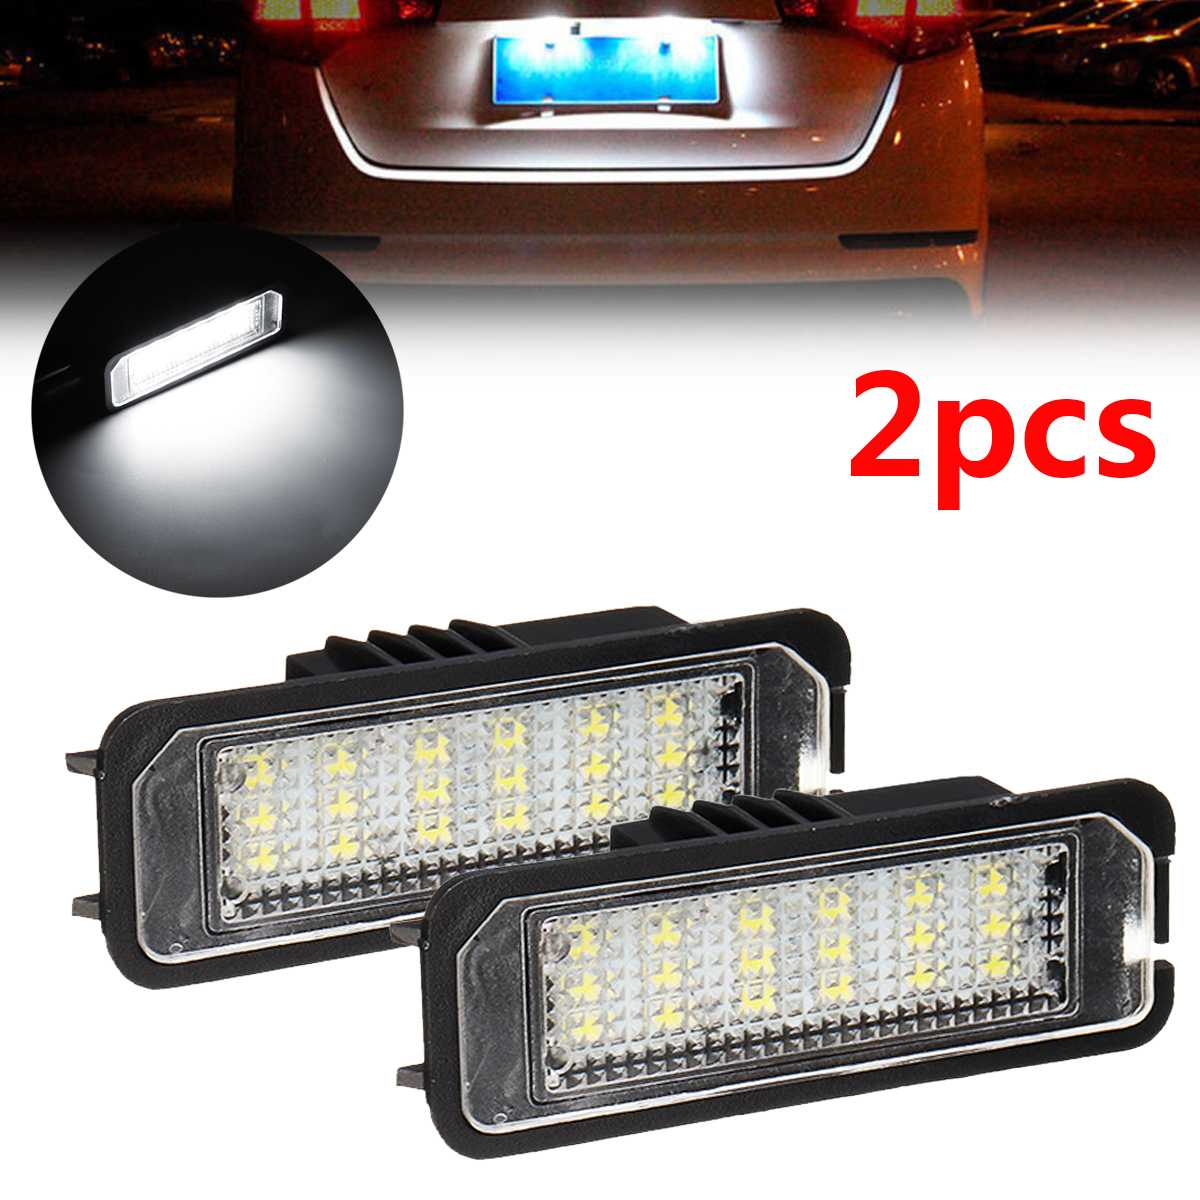 2Pcs 12V 5W LED Number License Plate Light Lamps for VW GOLF 4 6 Polo 9N for Passat Car License Plate Lights Exterior Access image